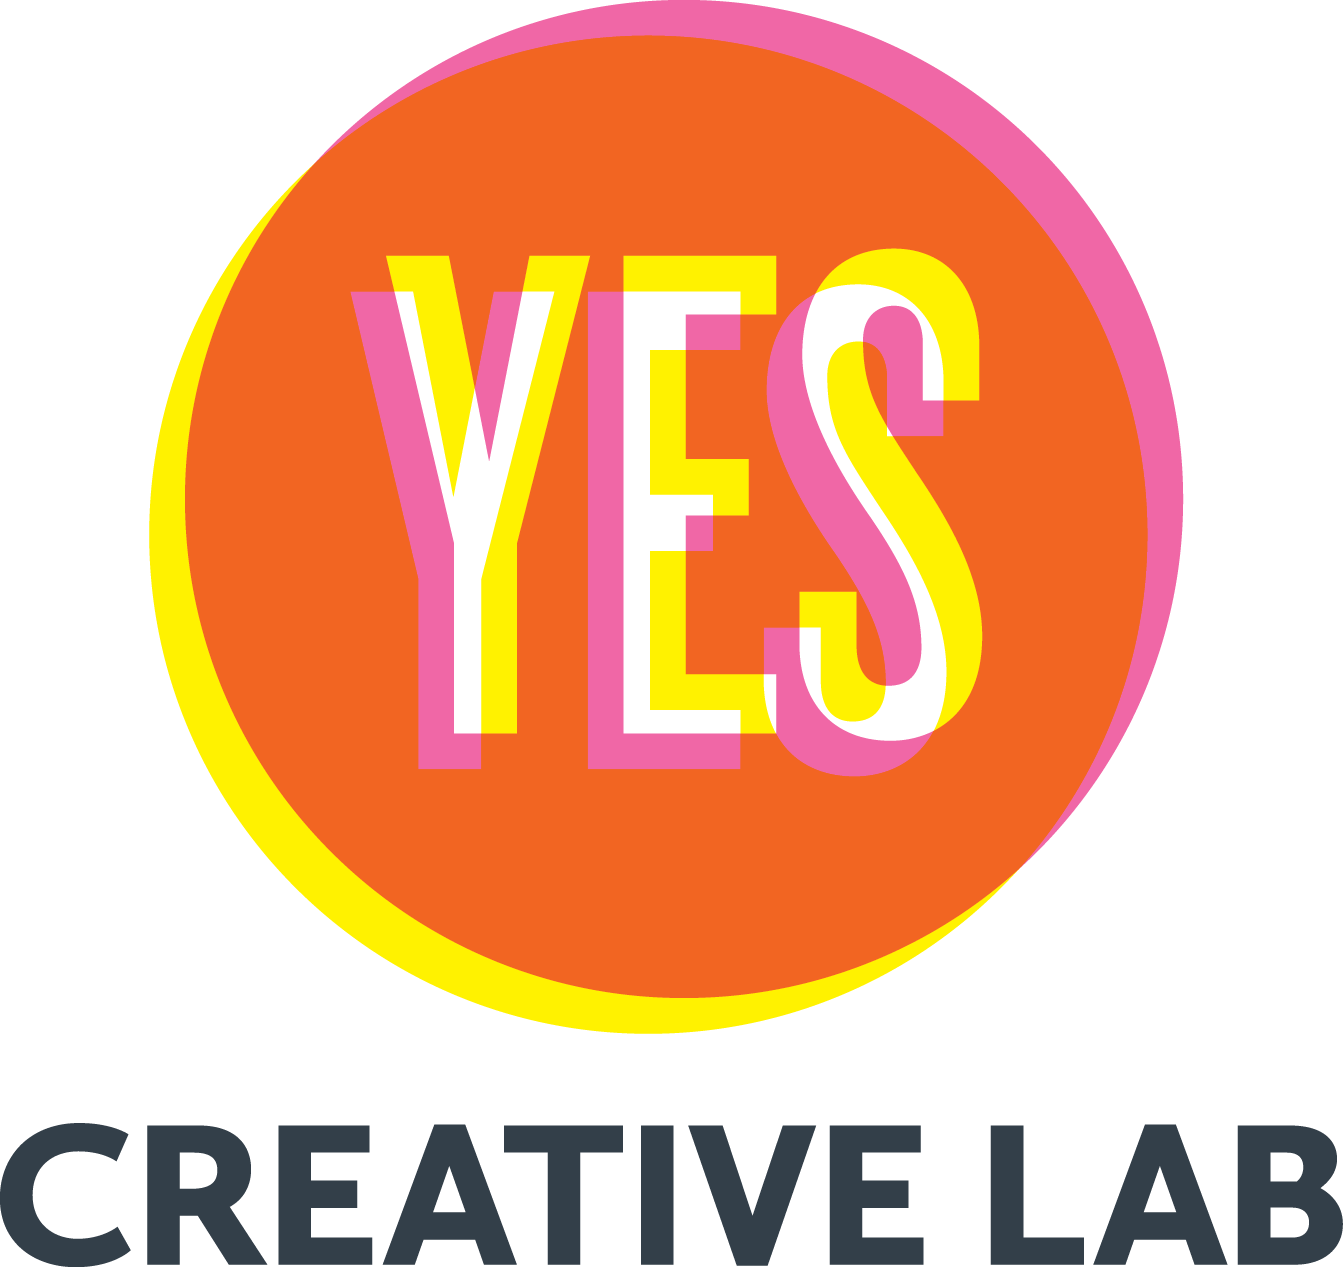 yes creative lab imaginative art classes for kids in cupertino